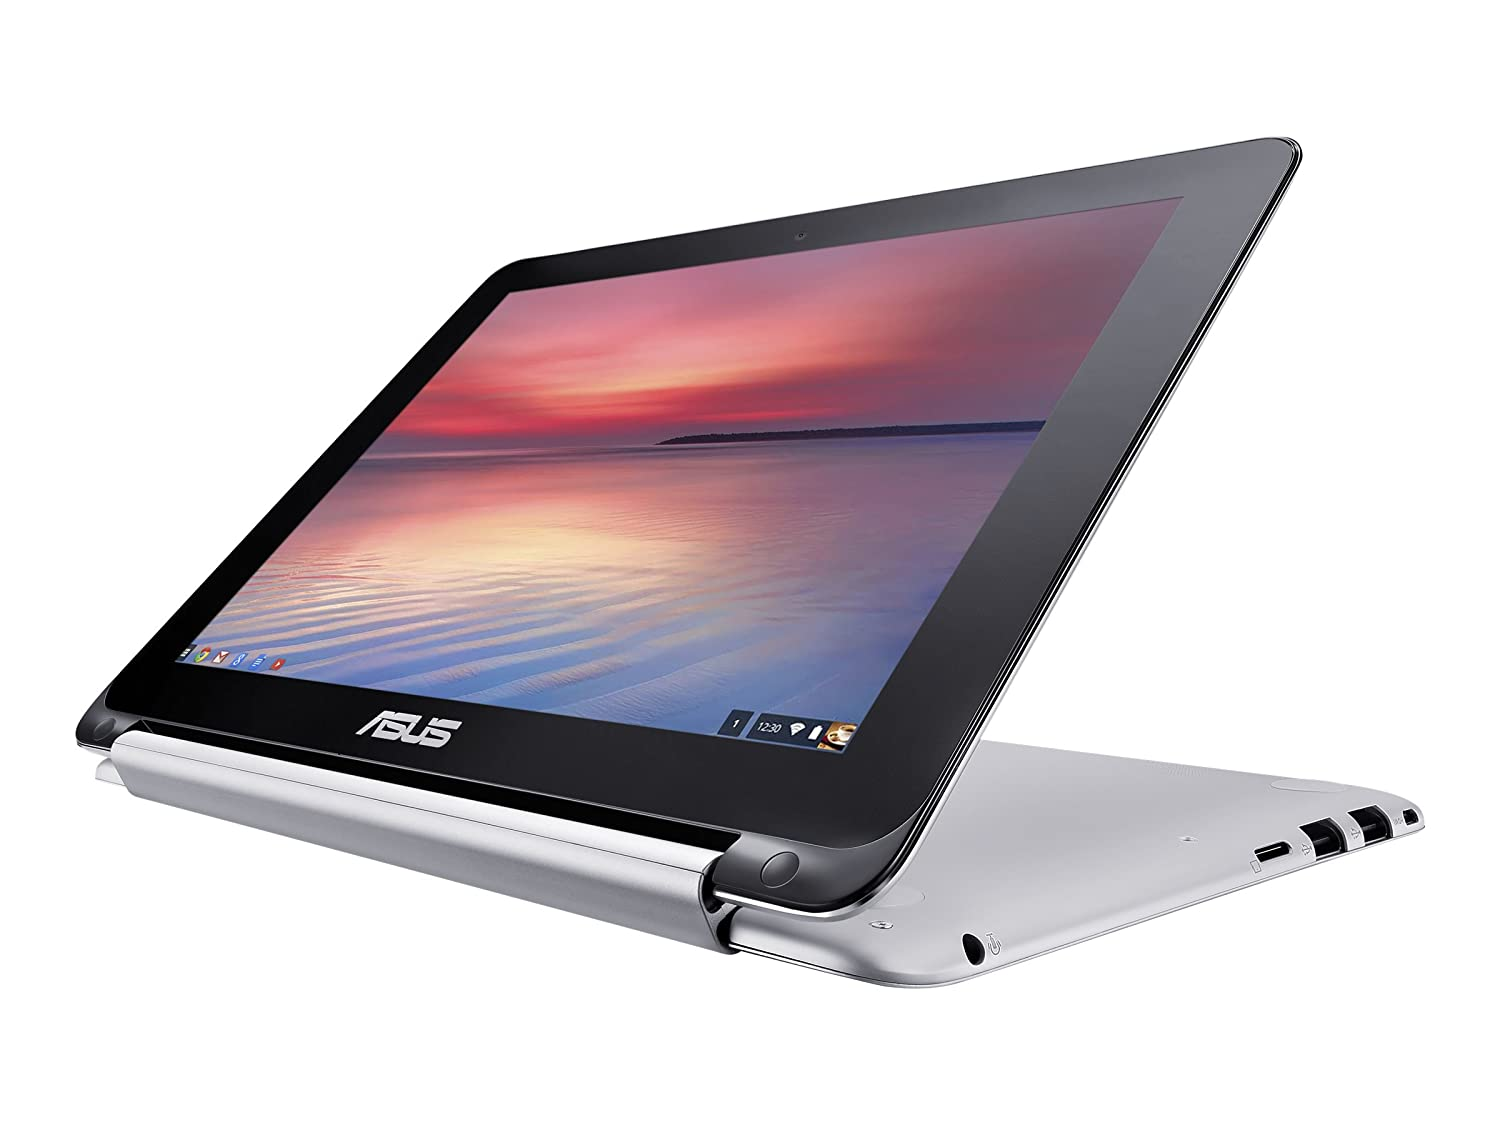 The Asus C100 is a 2-in-1 convertible Chromebook that perfect for artists or those who want a touchscreen.